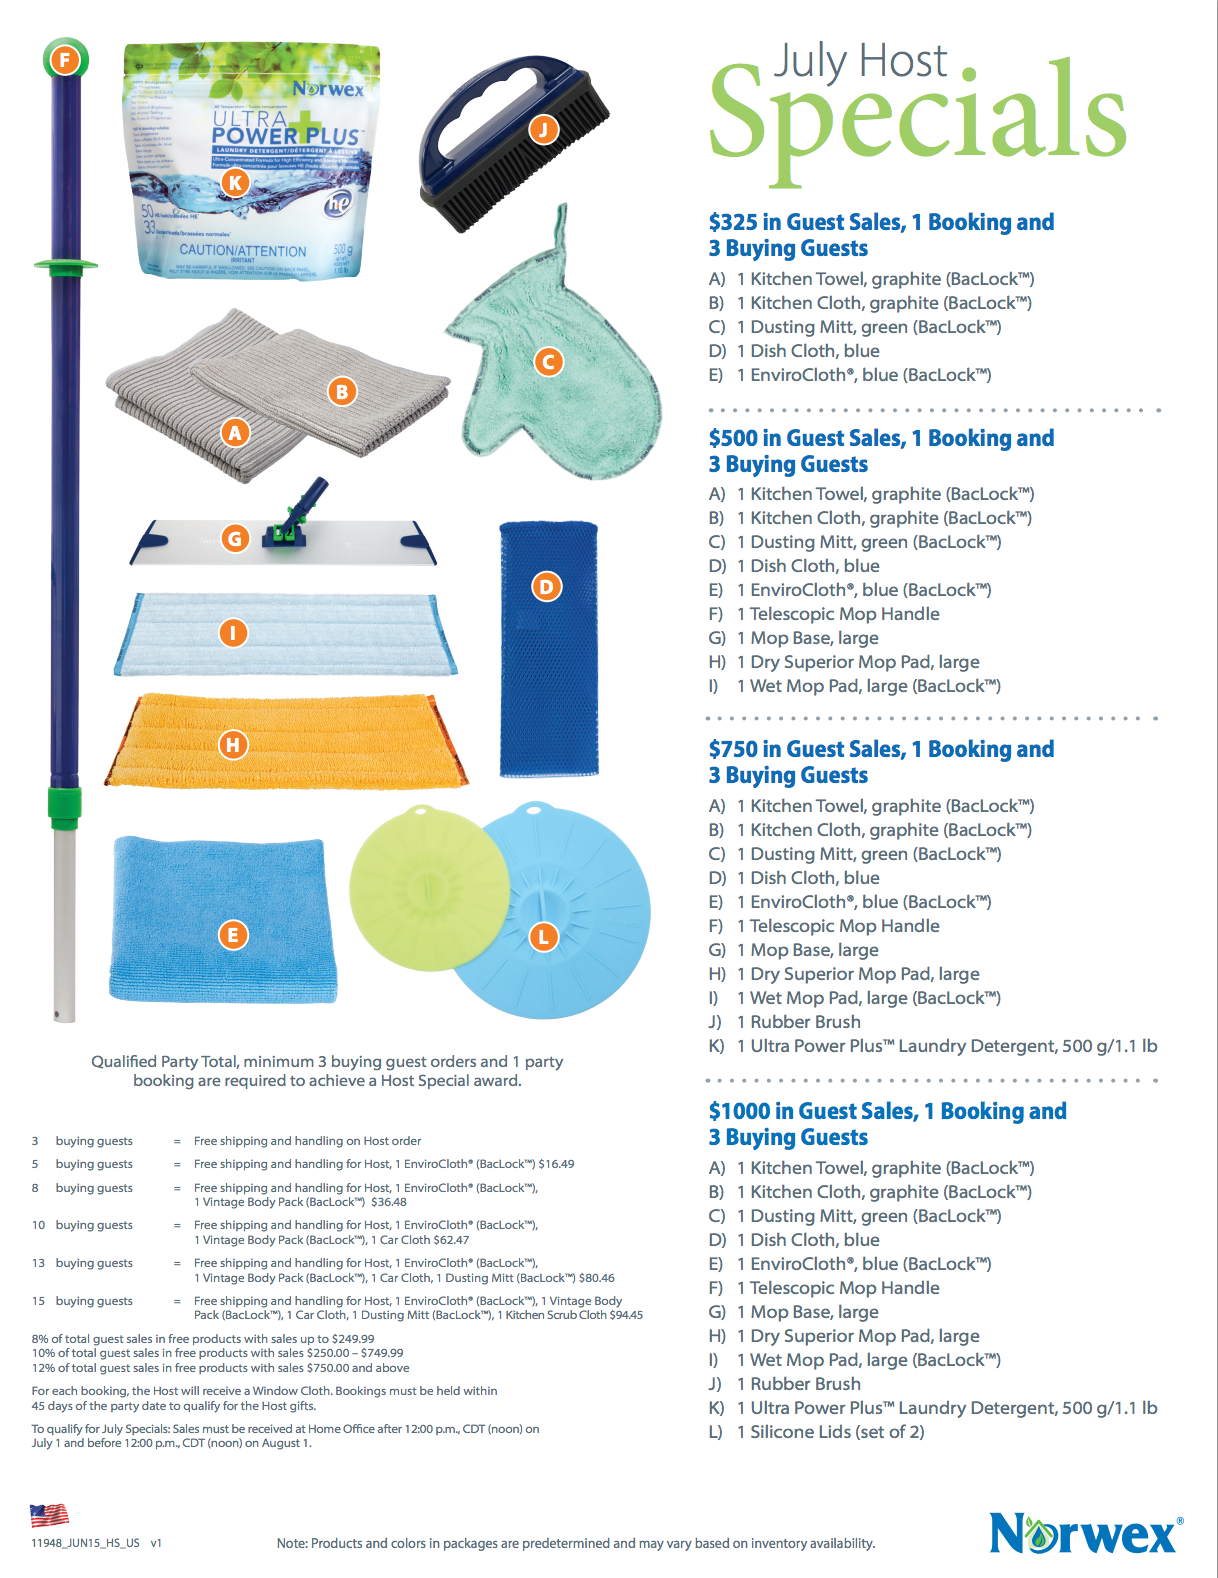 Norwex_Hostess_Gift_Specials_July_2015